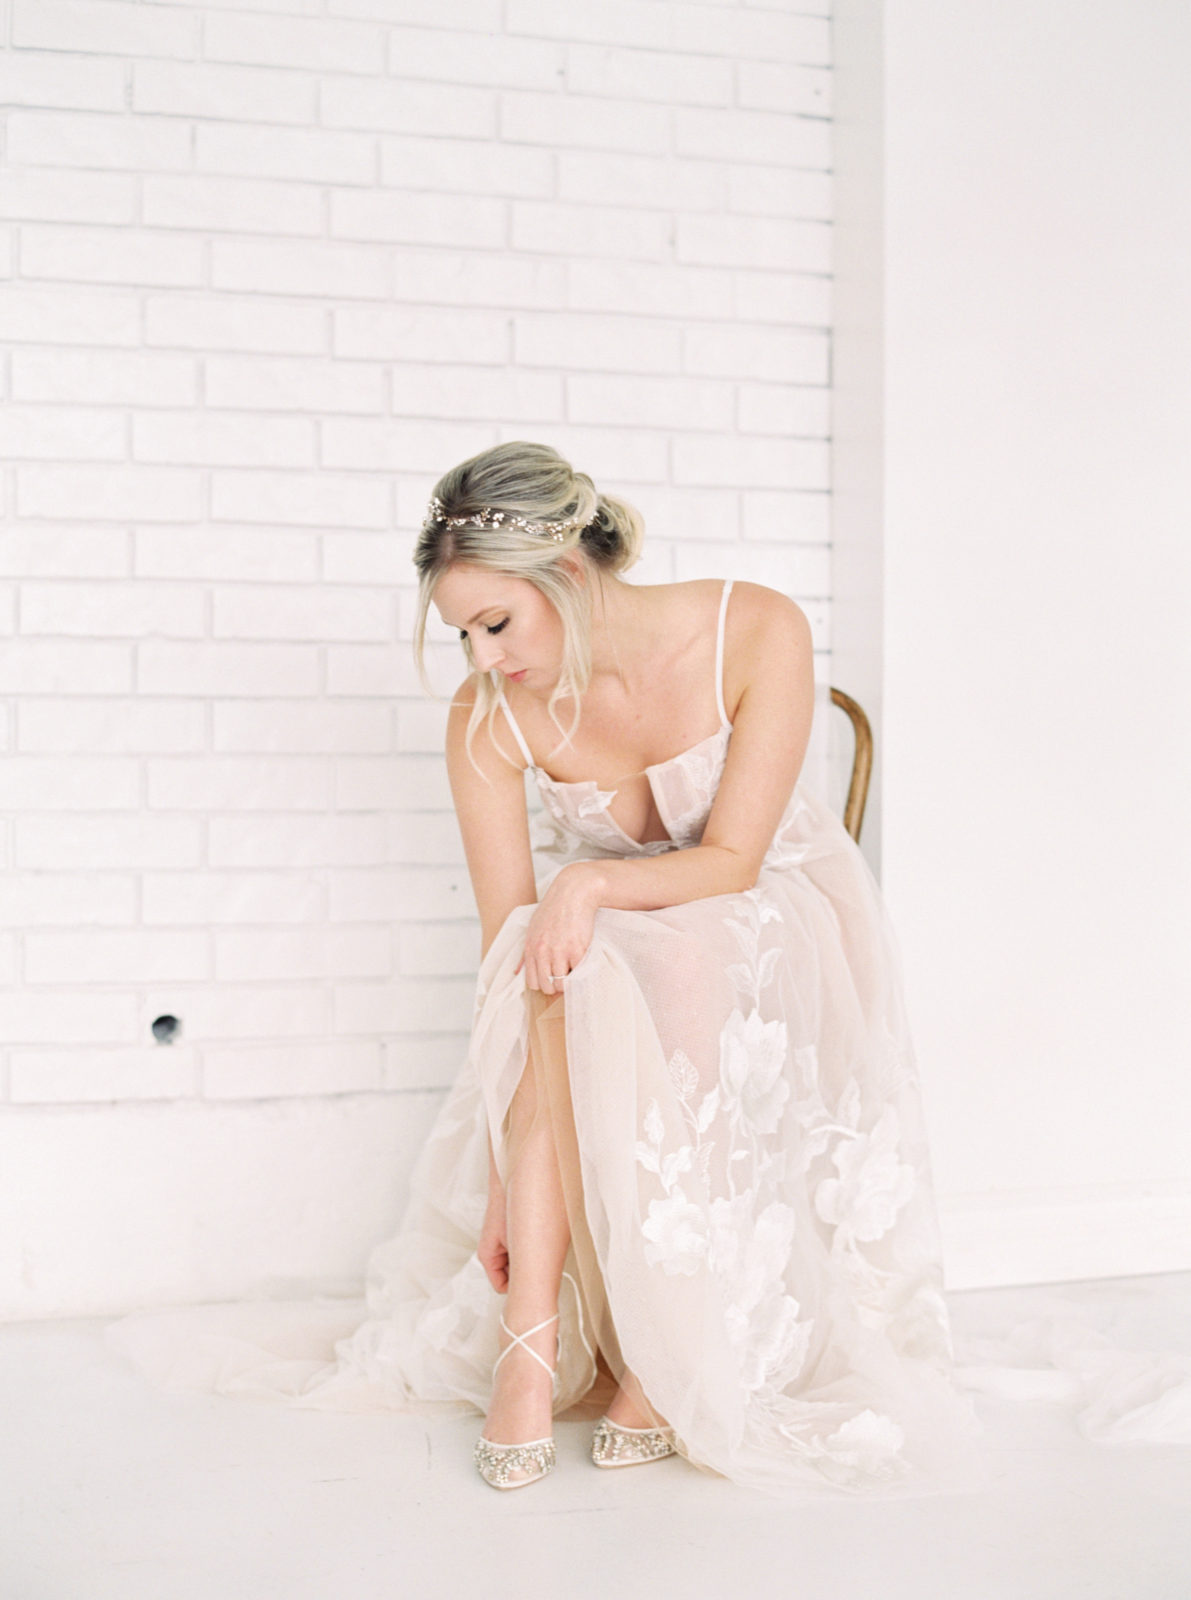 Bridal portrait with lace wedding dress for light and airy styled shoot